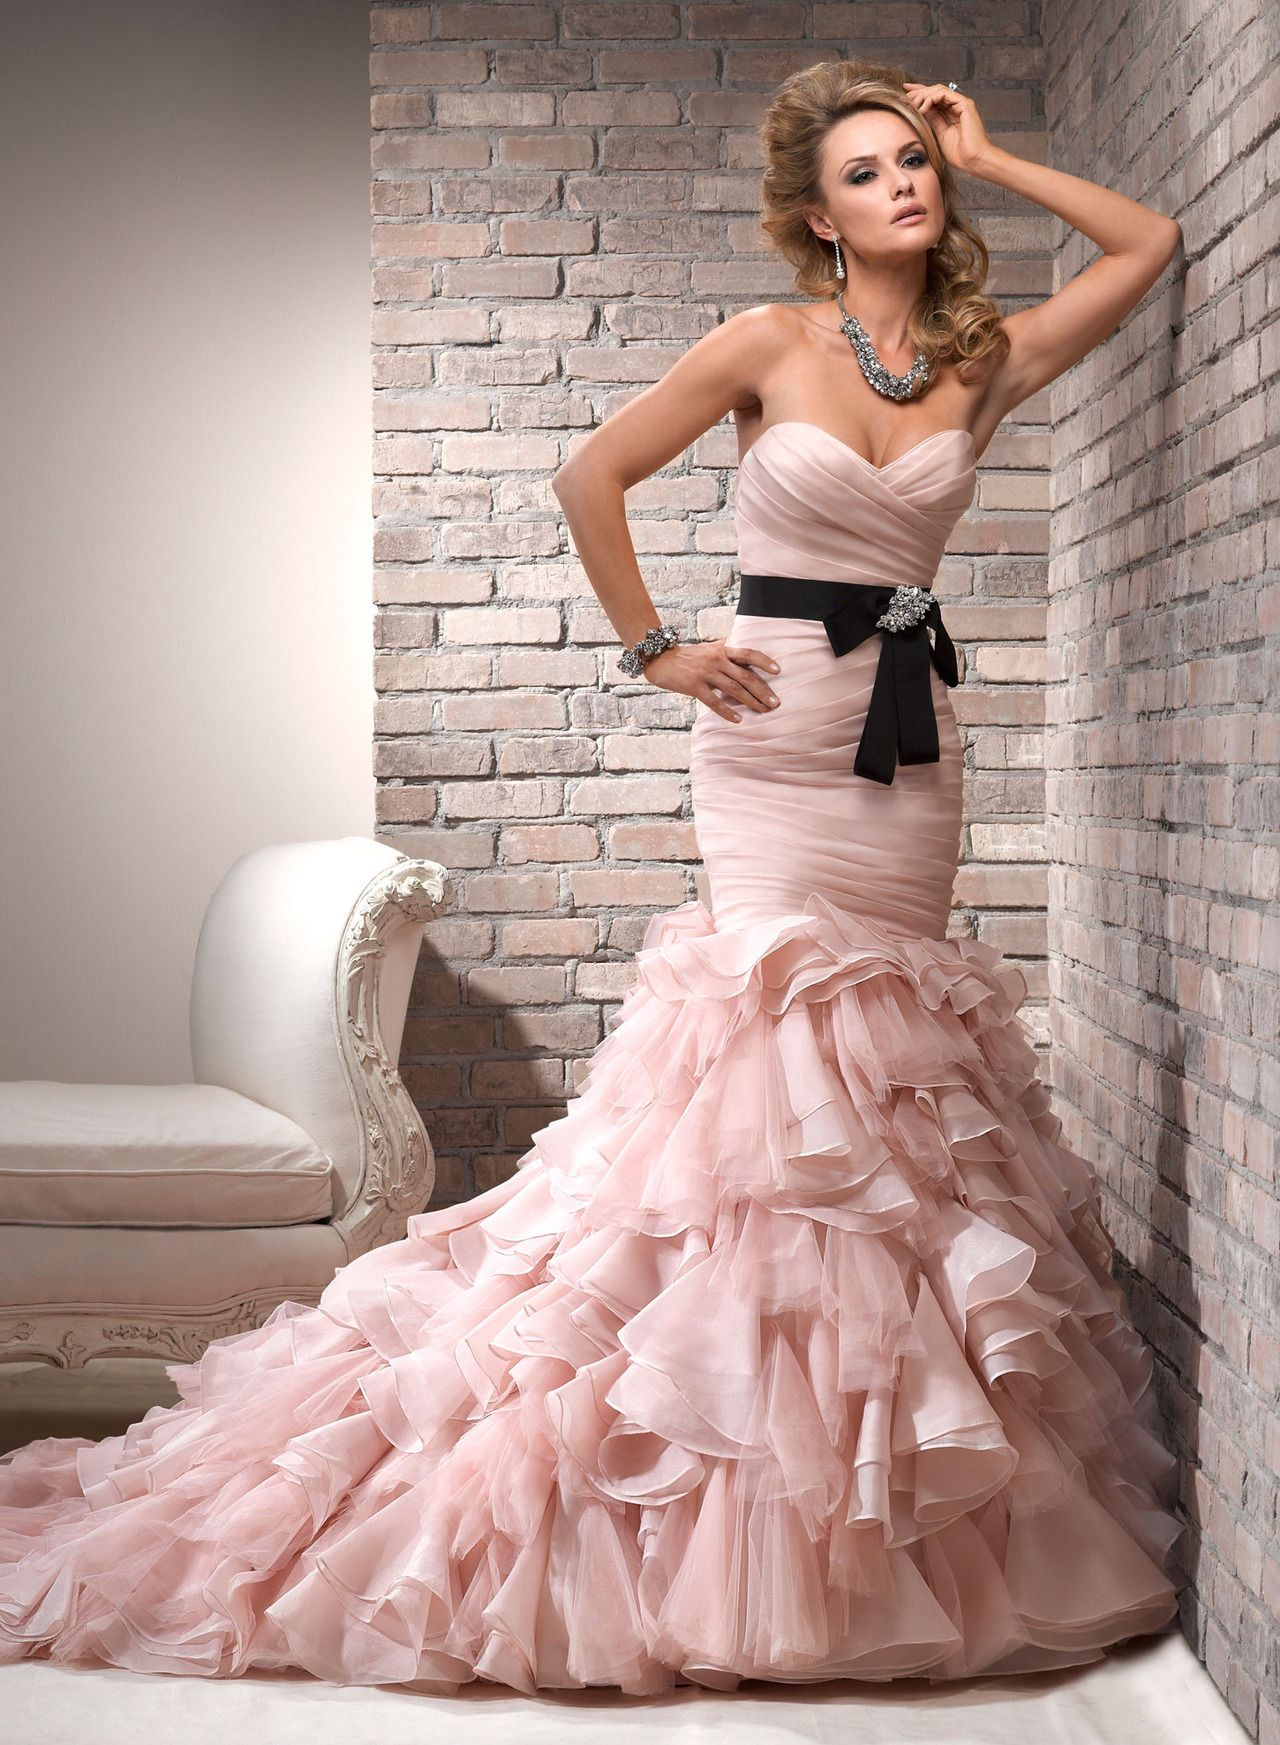 Ruffled gown stuff to try pinterest ruffles gowns and ball gowns